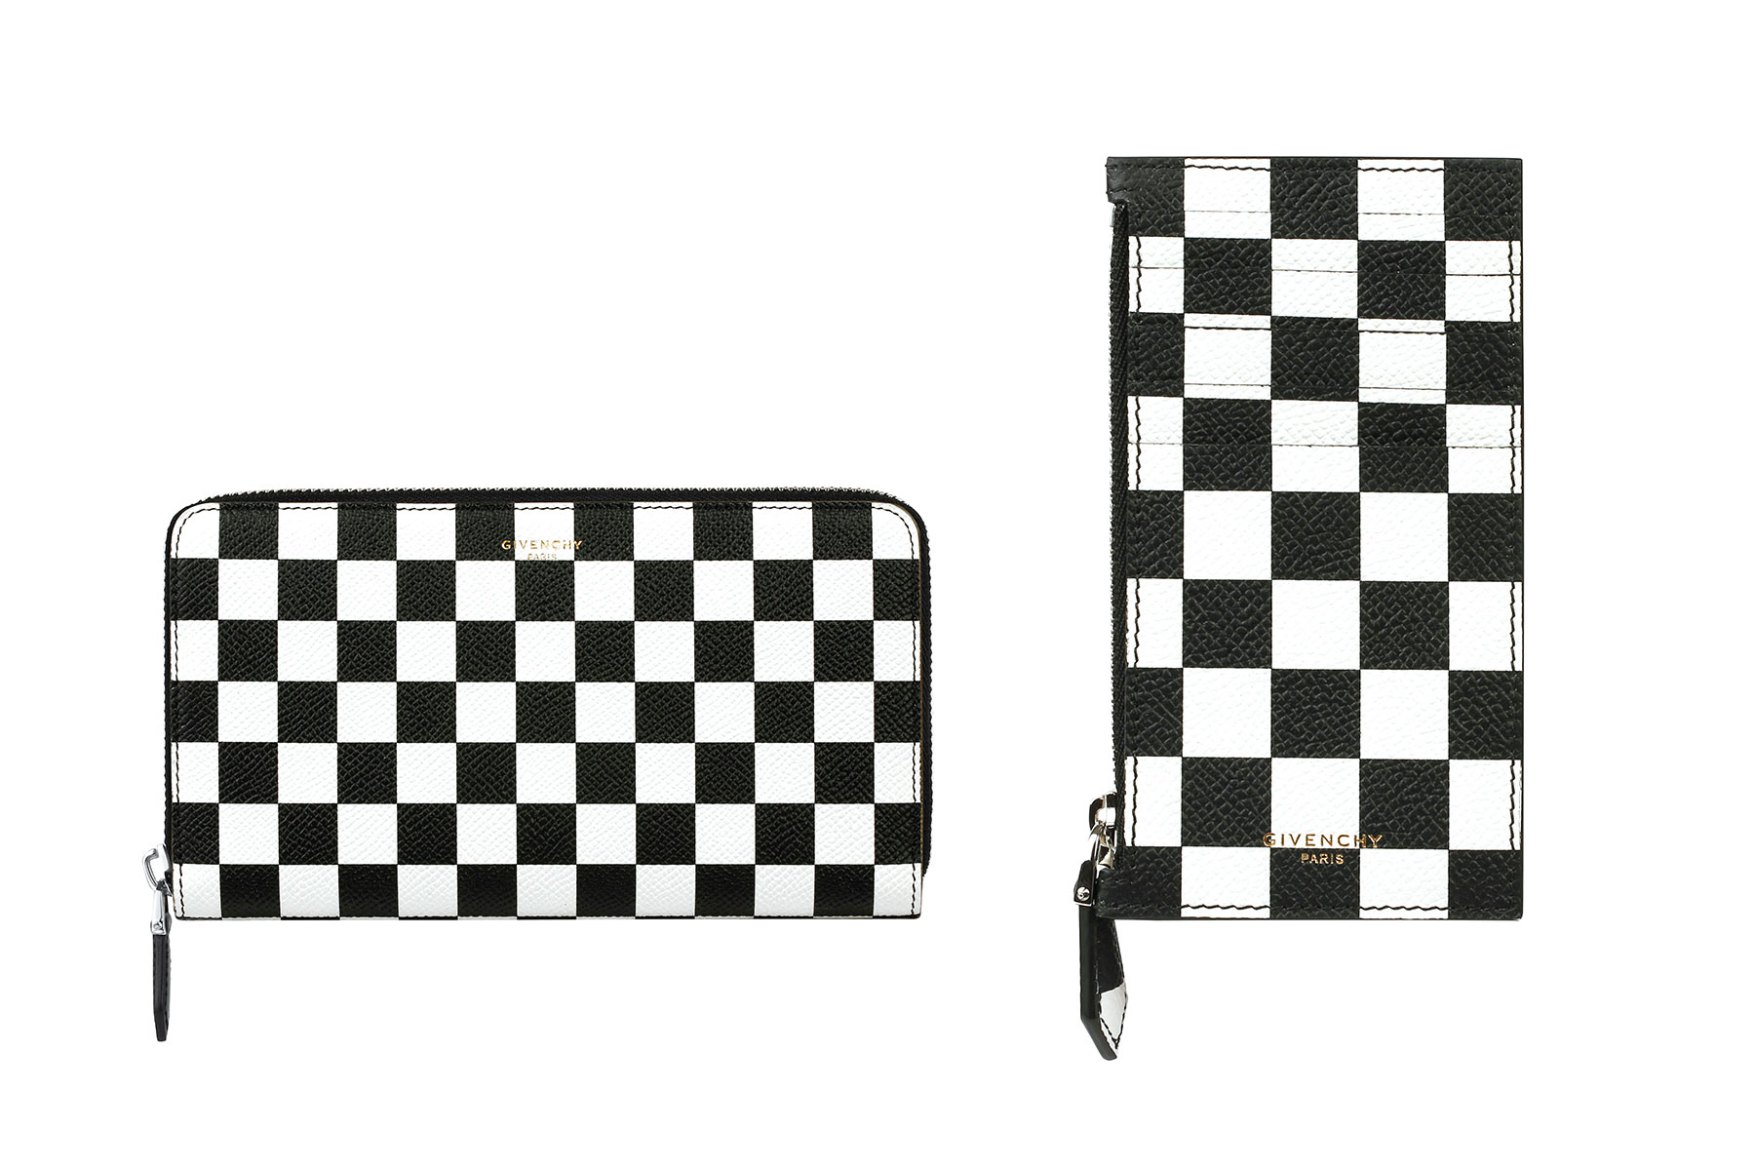 Givenchy 2017 Spring Summer Collection Accesories - 3735587